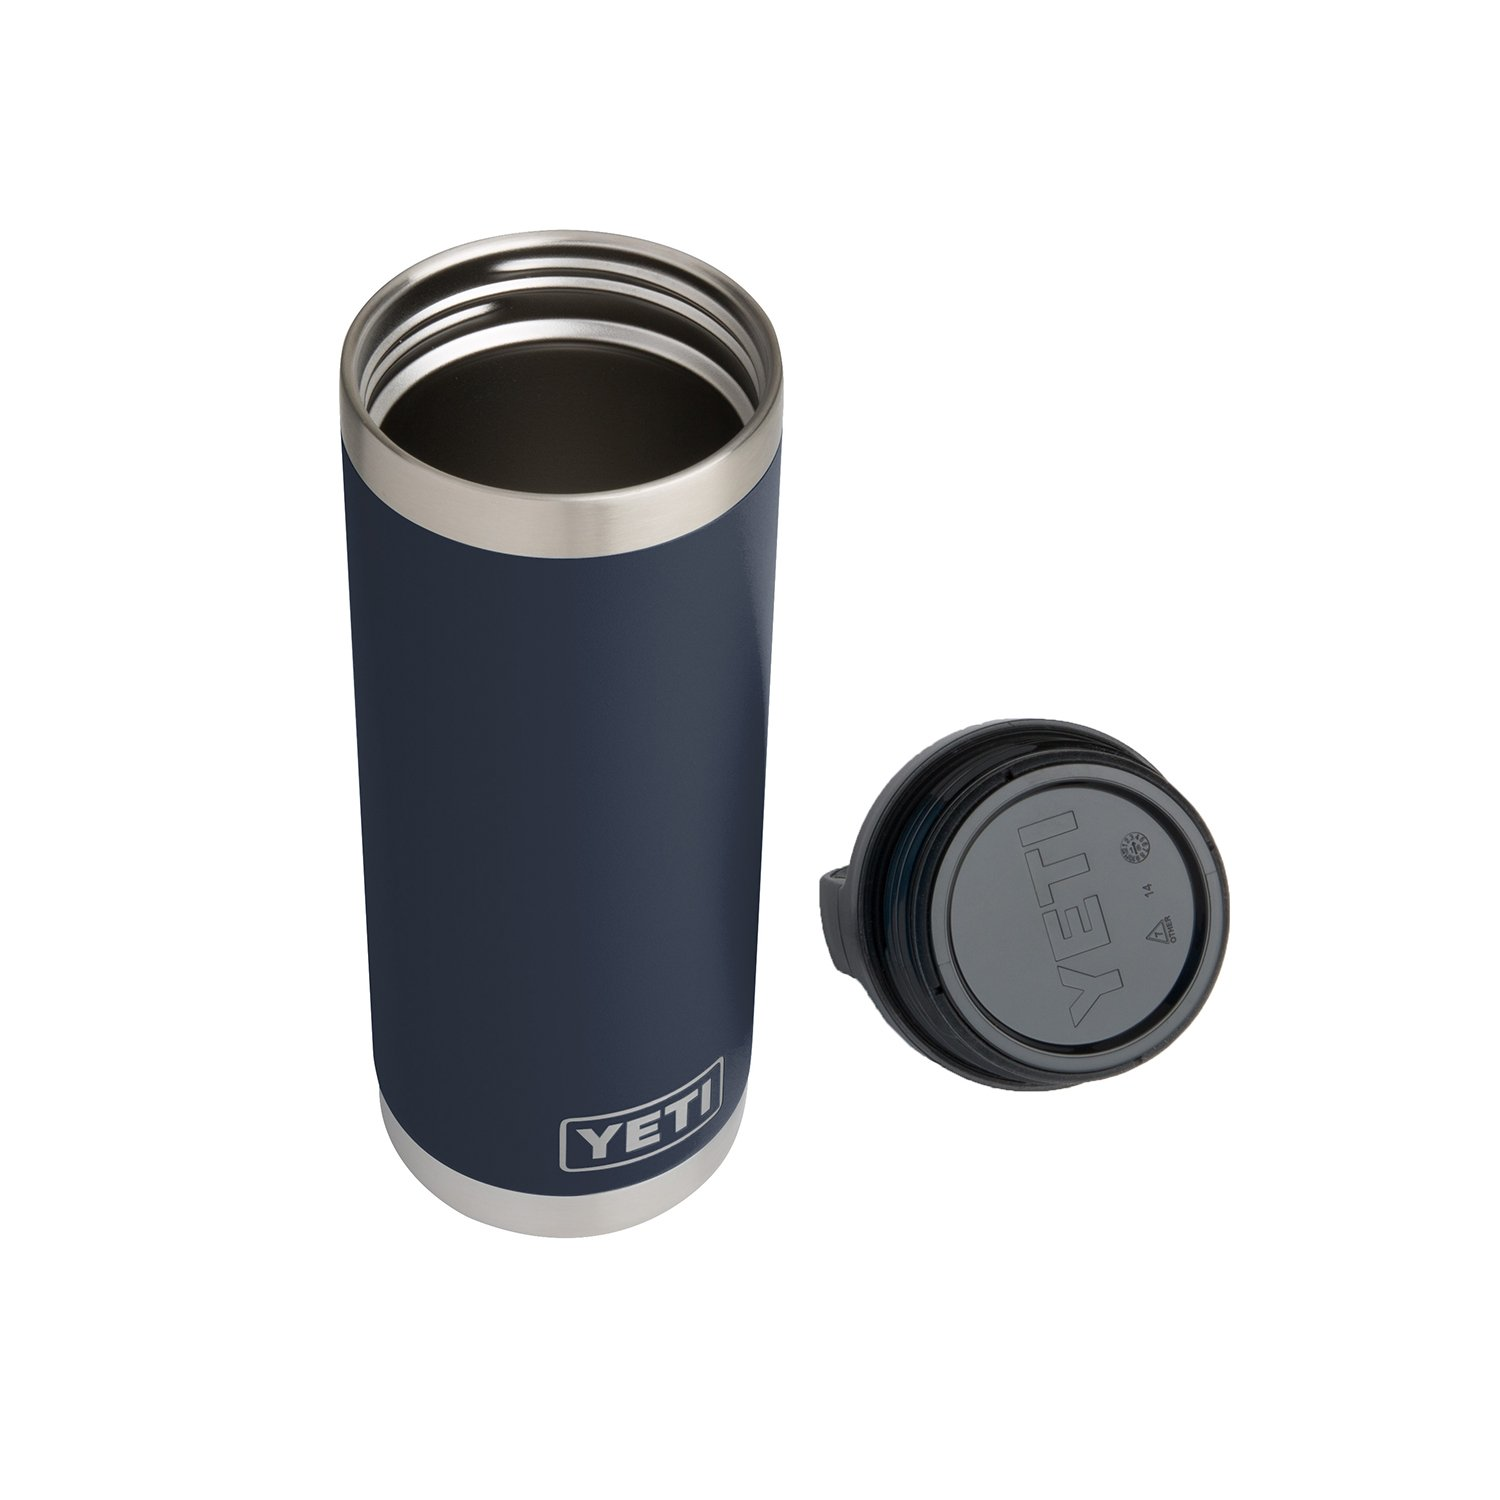 YETI Rambler 18 oz Stainless Steel Vacuum Insulated Bottle with Cap, Navy by YETI (Image #3)